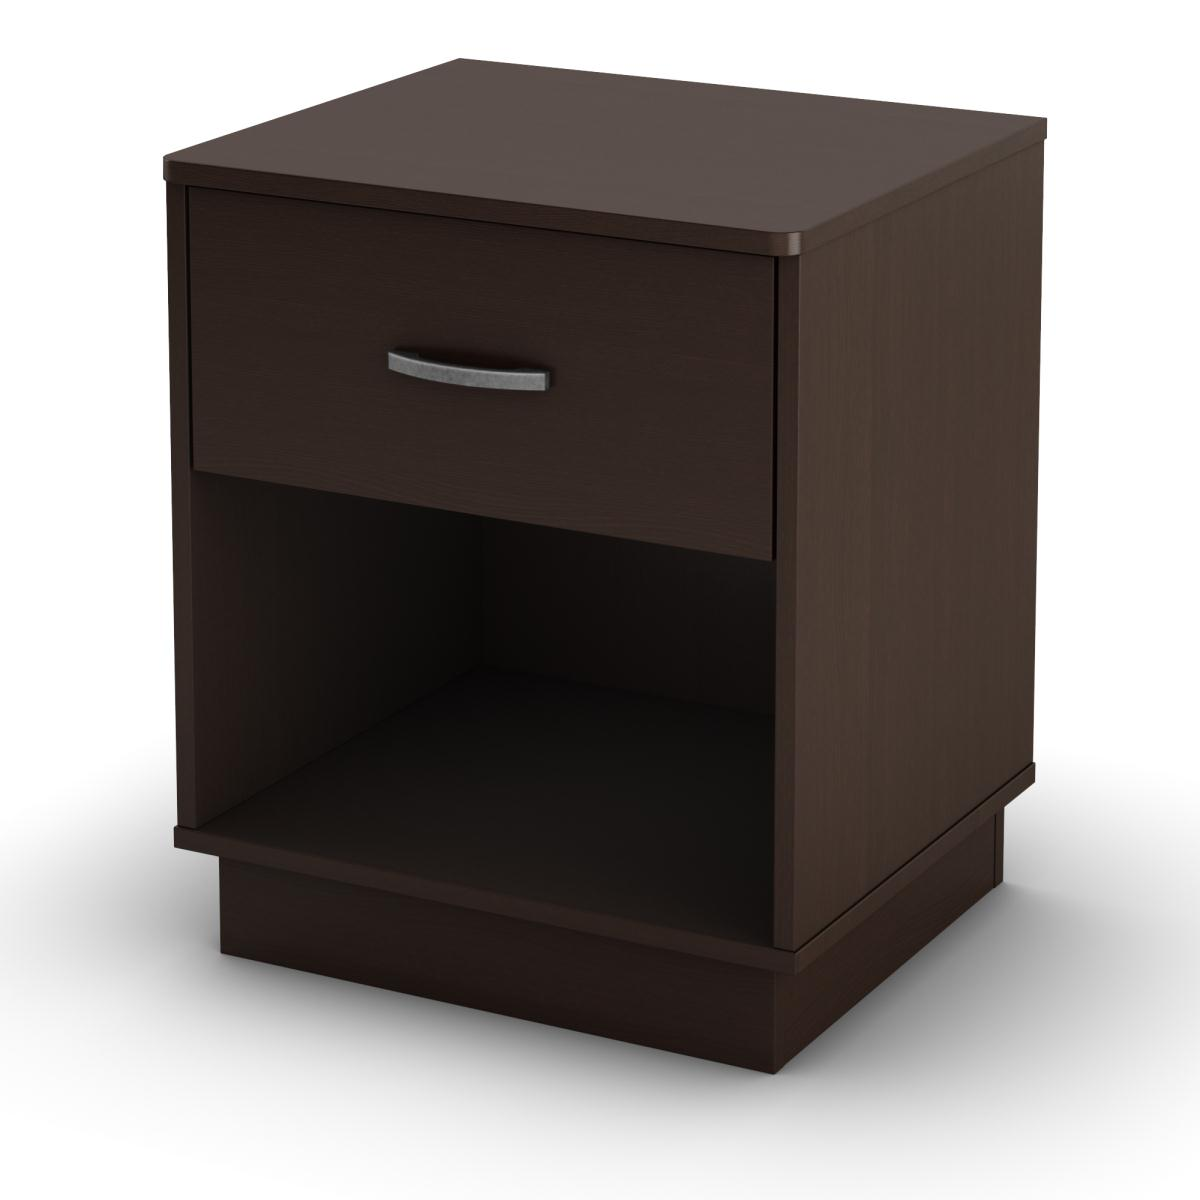 South Shore Logik Night Stand - Chocolate